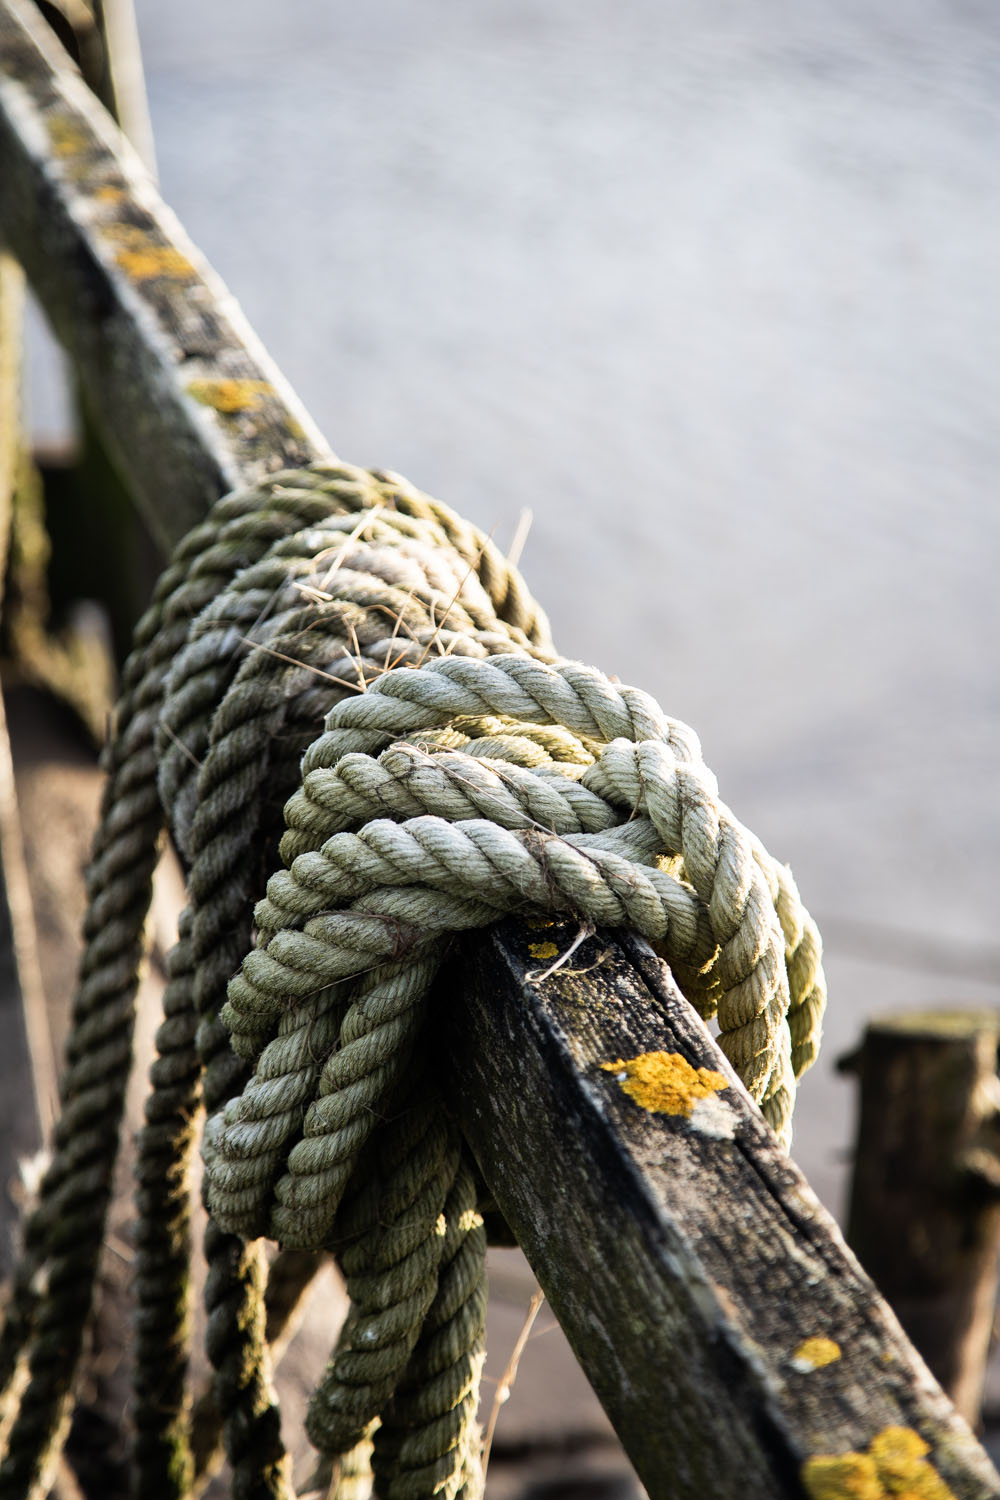 Details of rope wrapped around wood